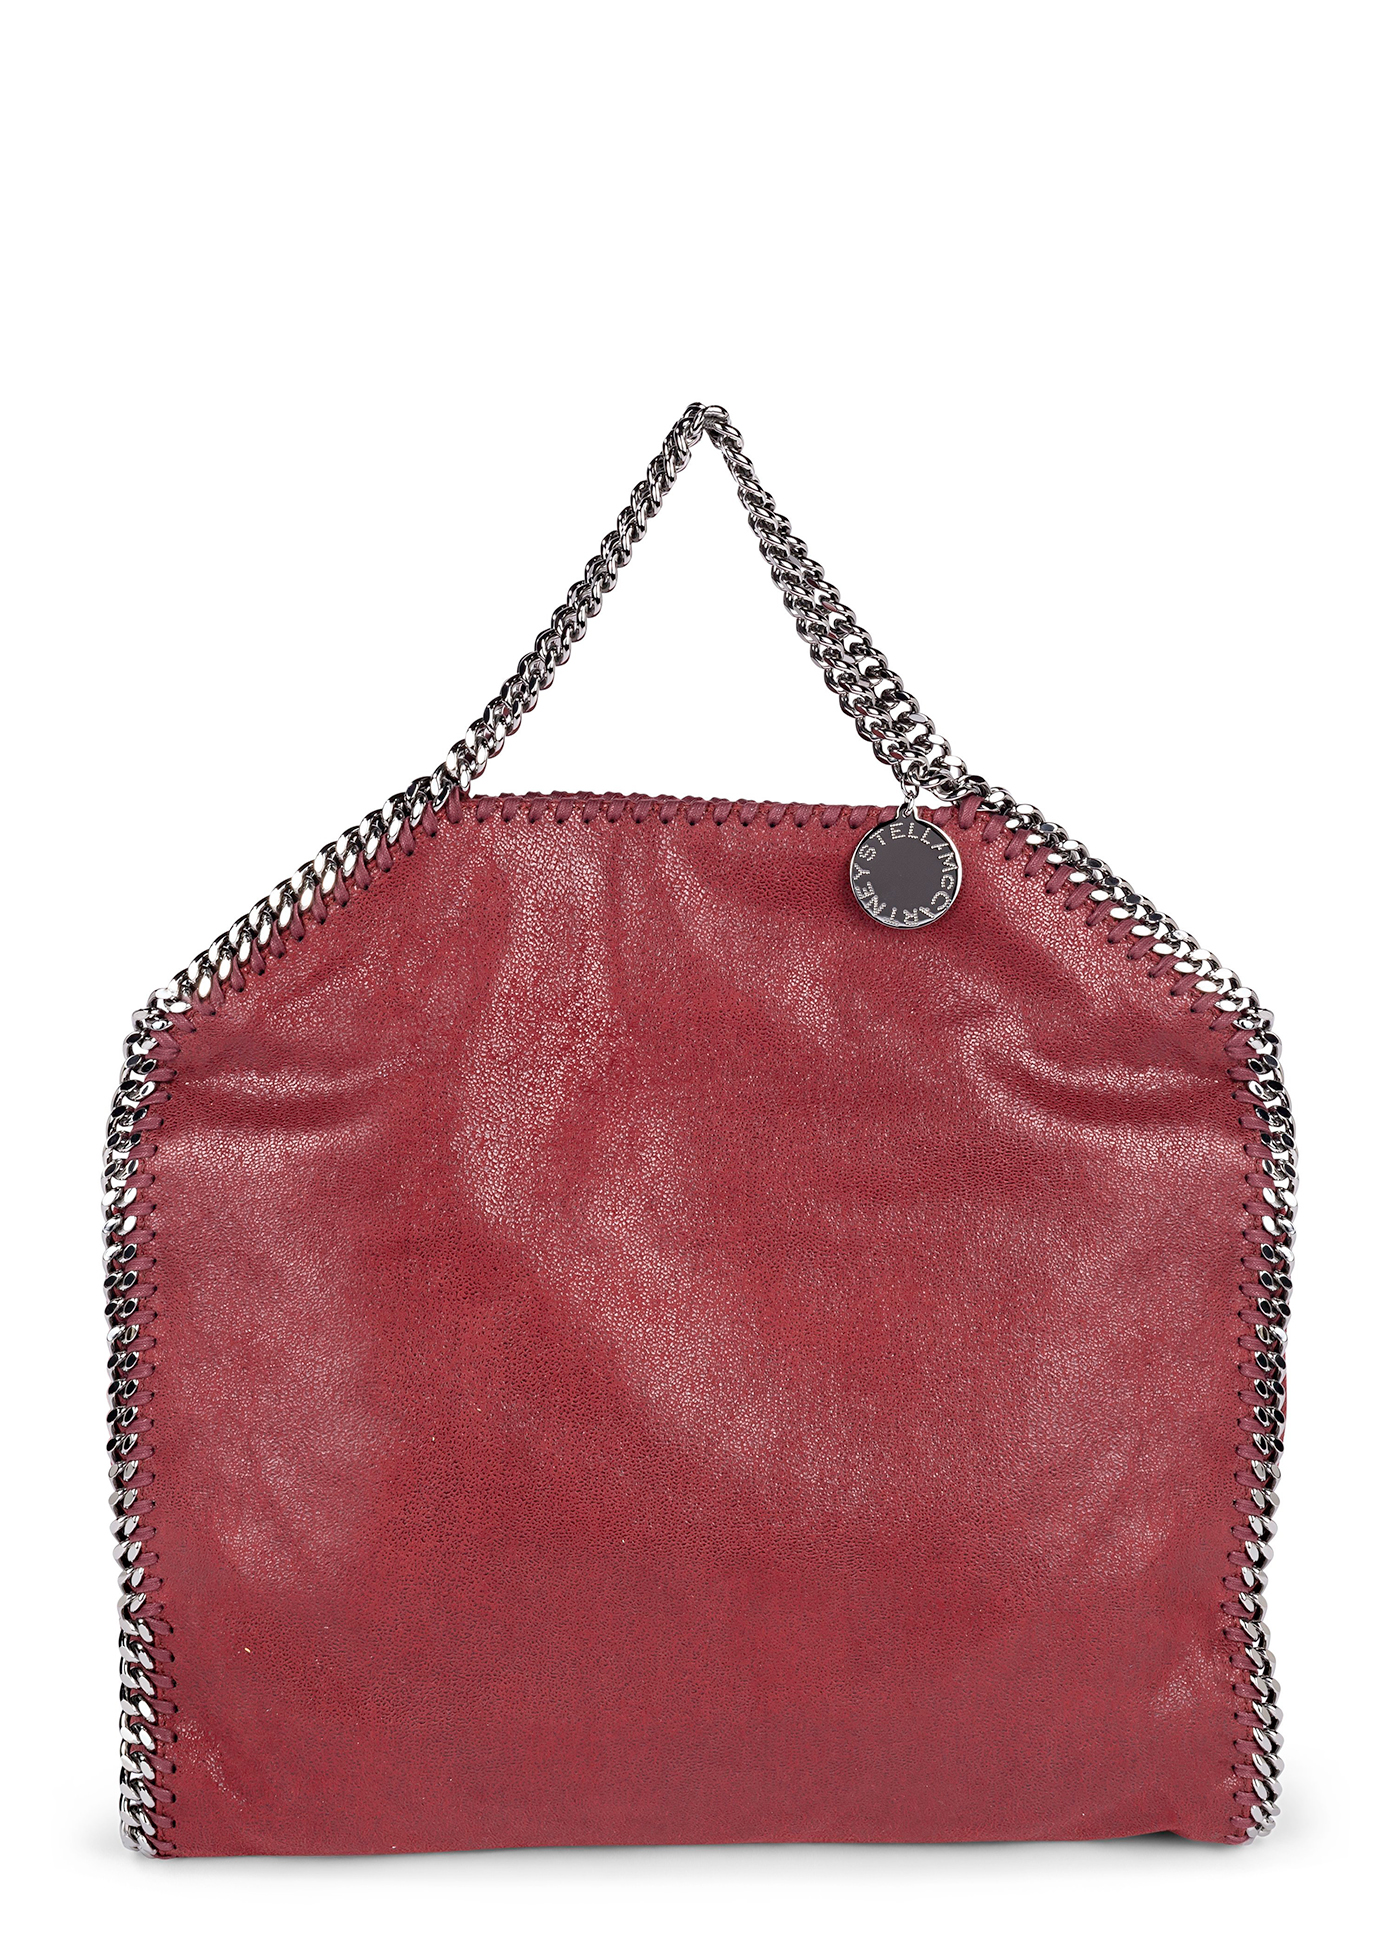 3 Chain Falabella Shaggy Deer image number 0